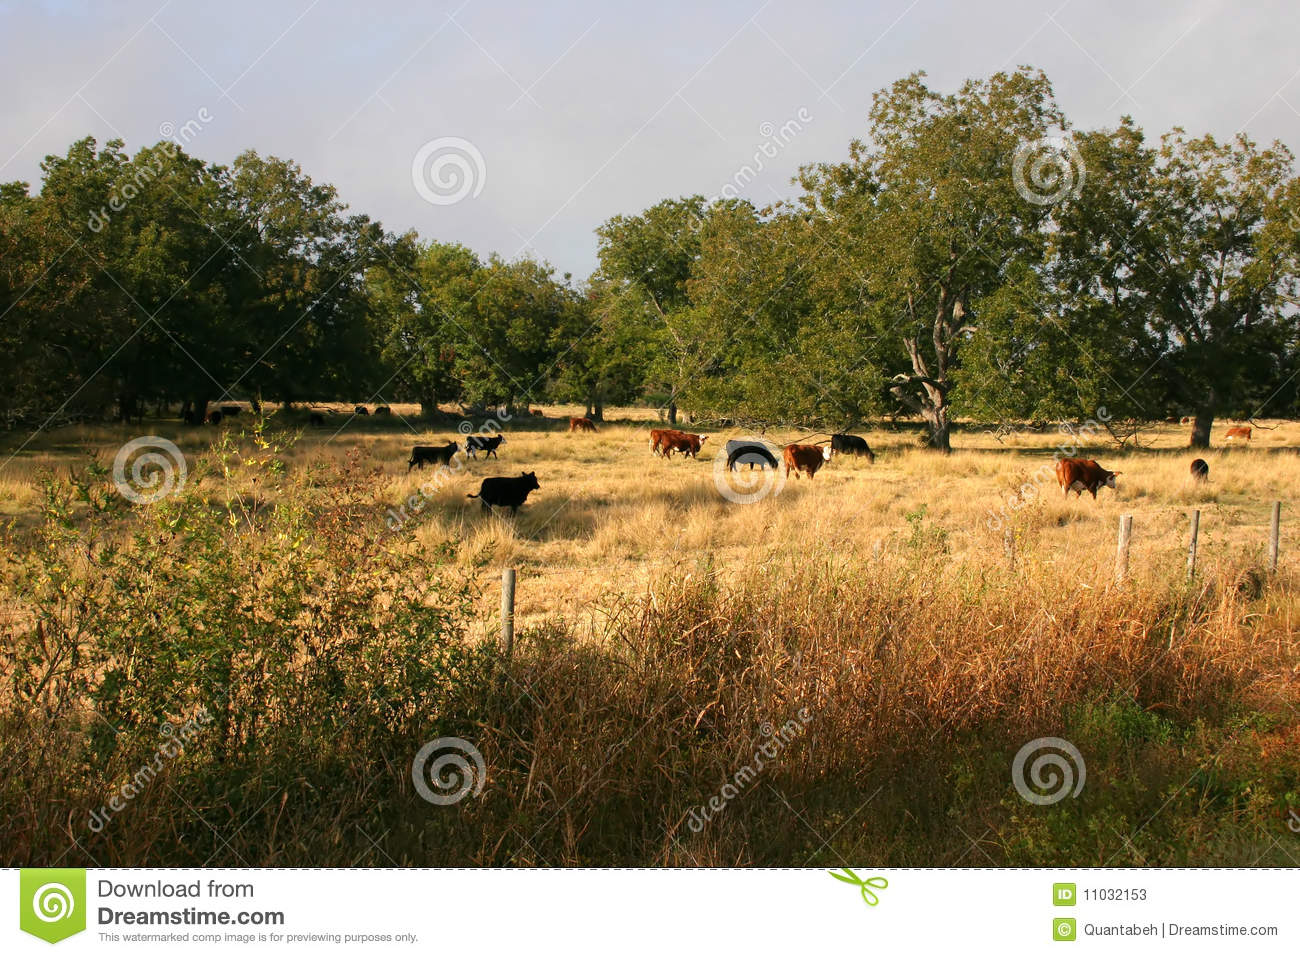 Grass-fed beef by the numbers